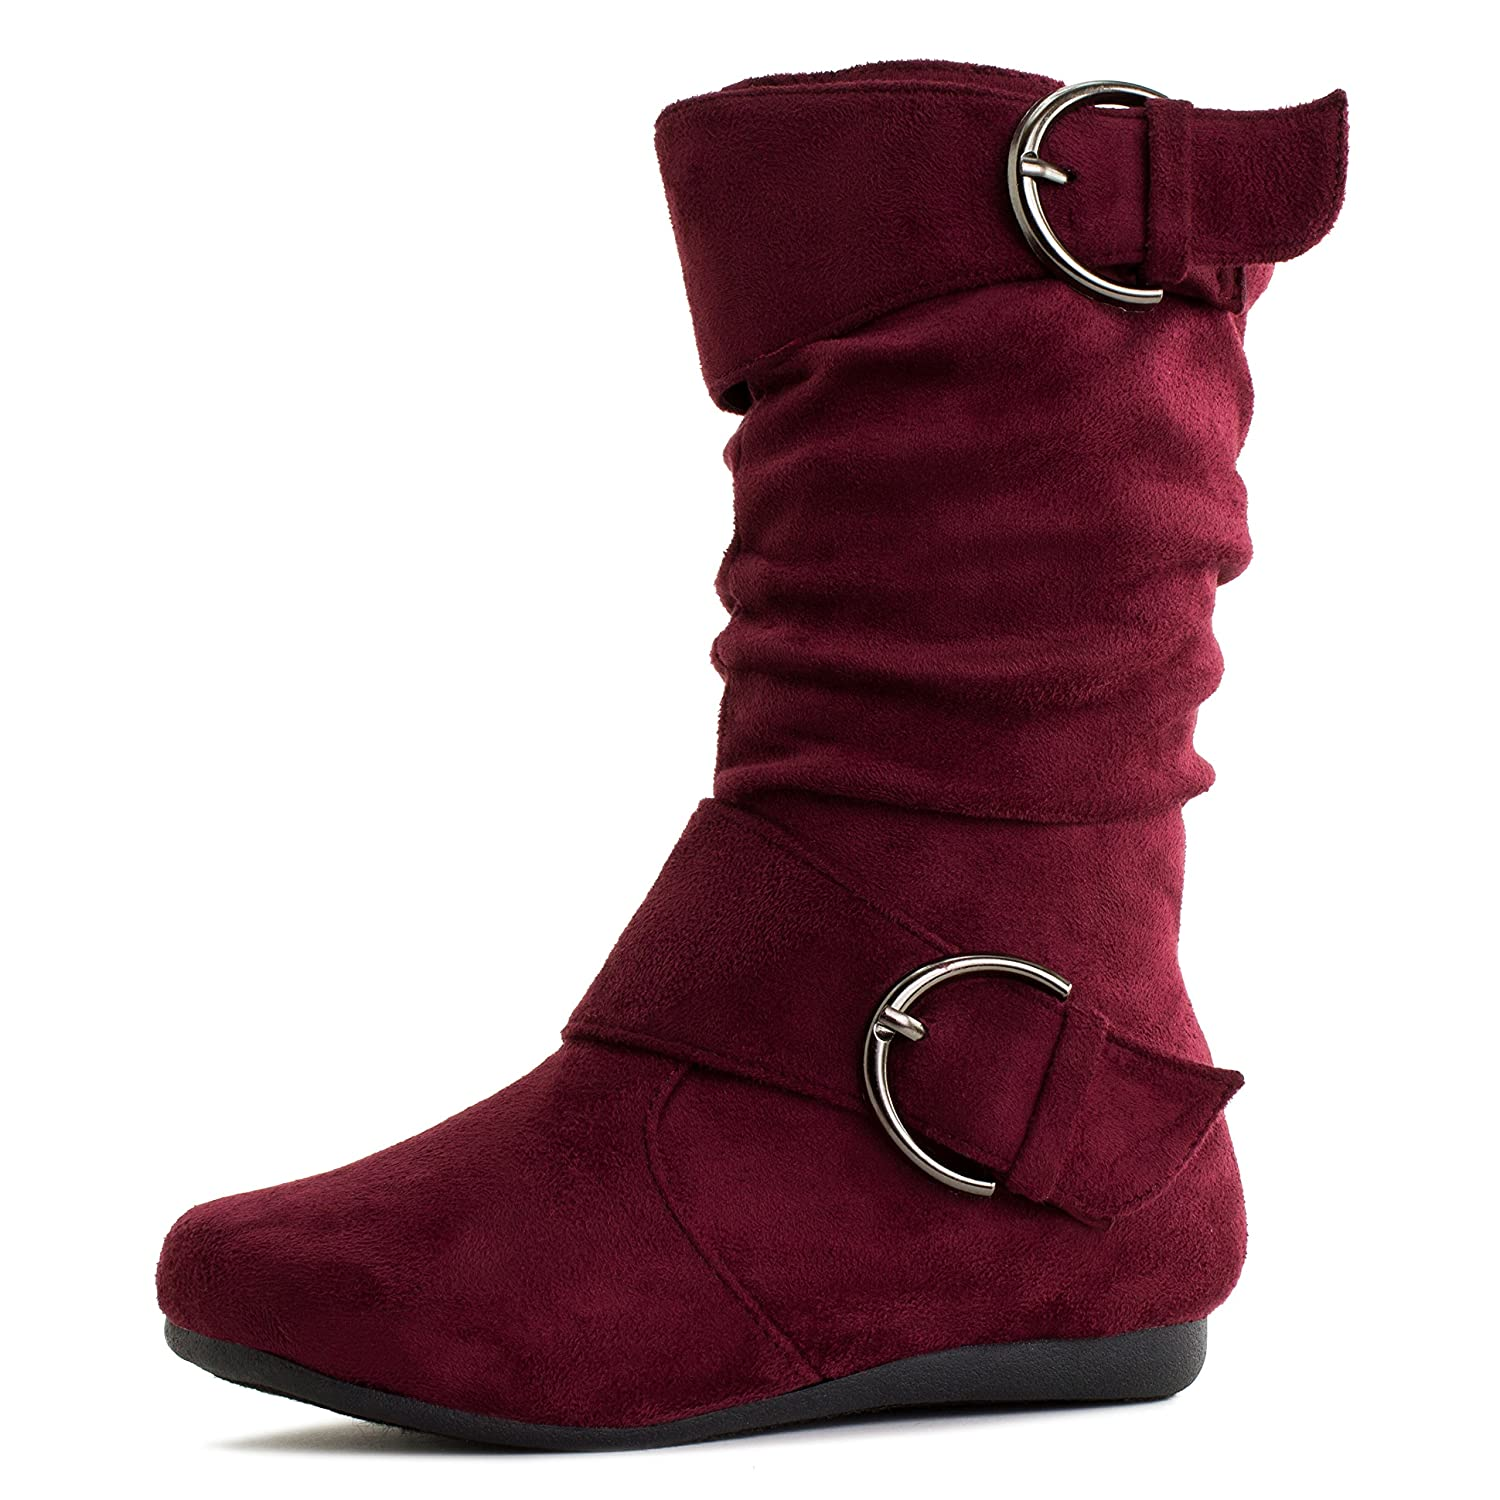 a9708af222d0c Generation19 Girls Faux Suede Two Buckle Mid Calf Boots (Toddler/Little  Kid/Big Kid)